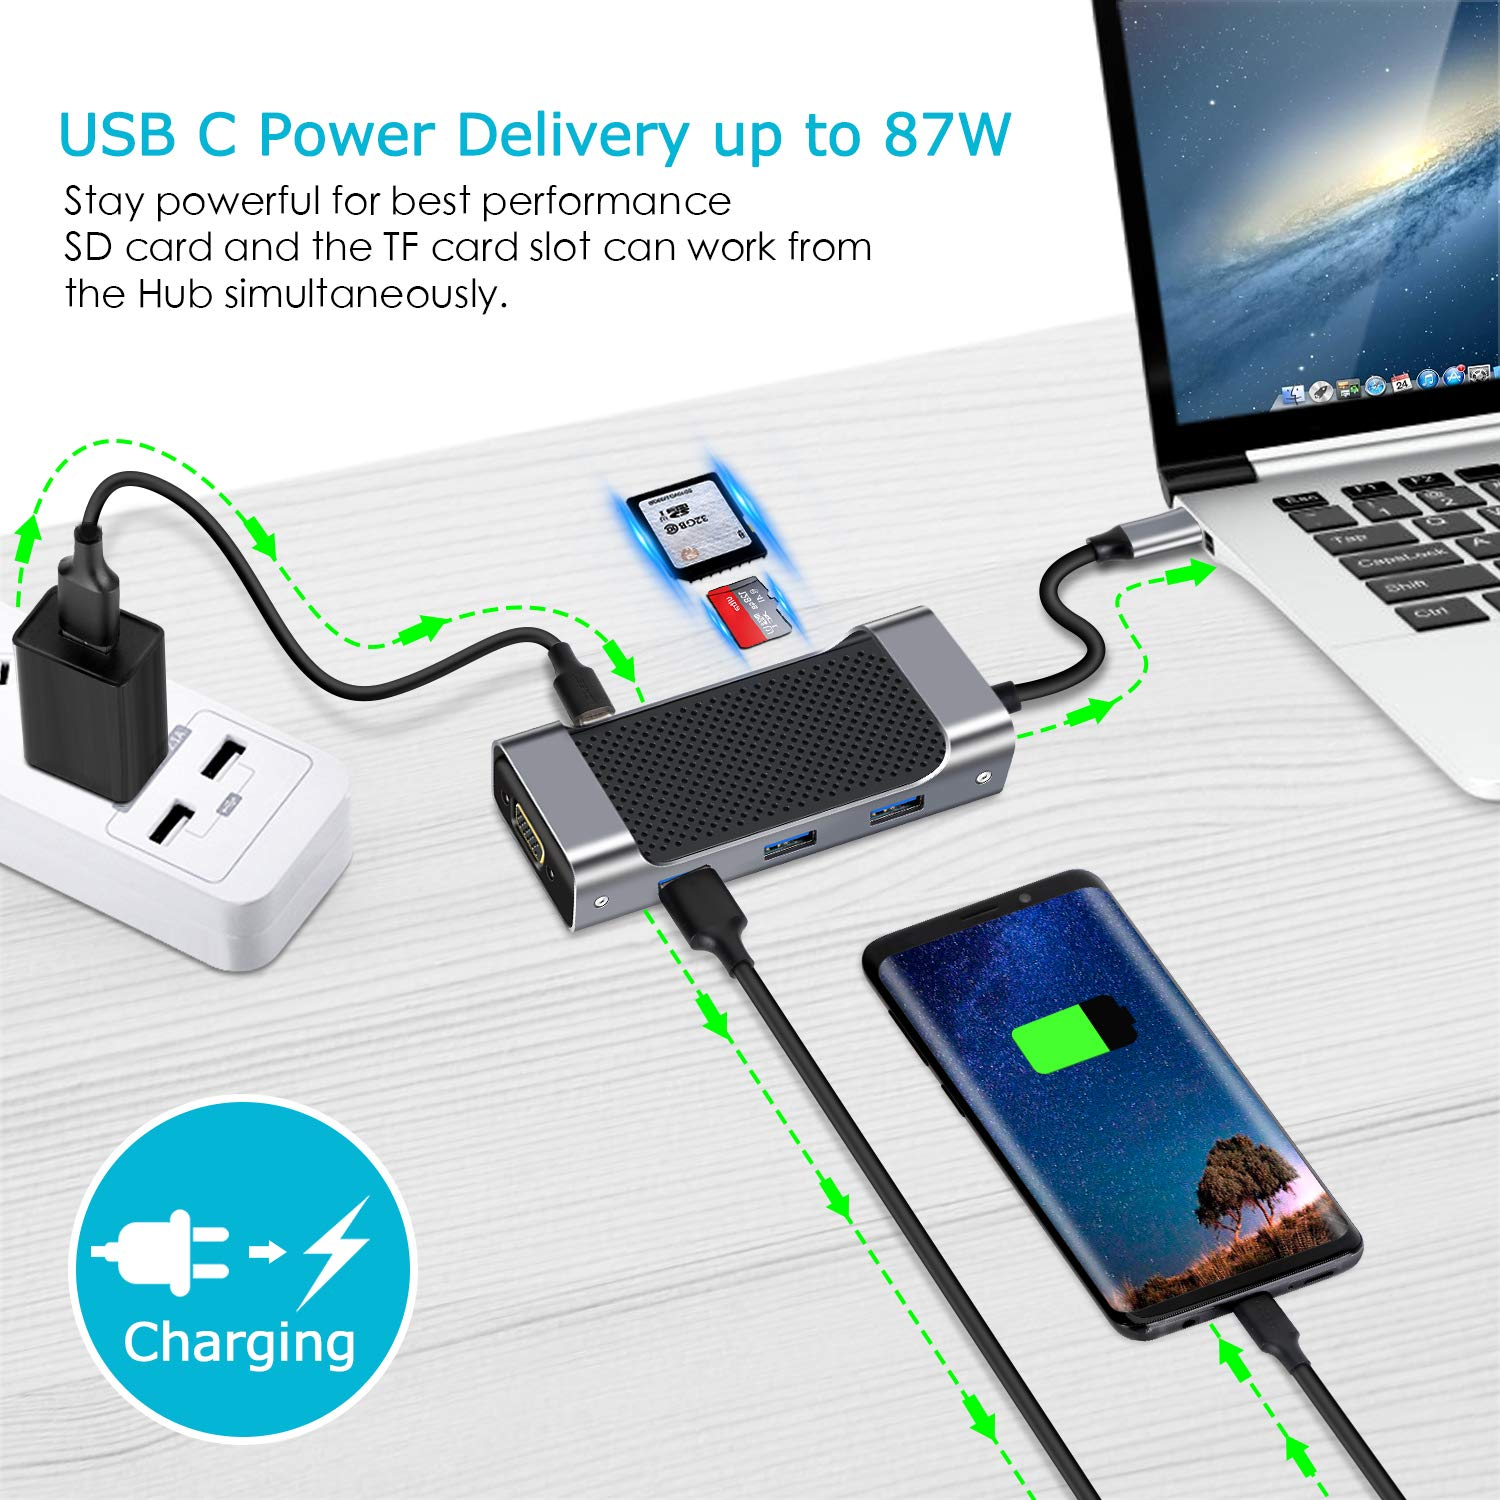 USB C to HDMI 4K VGA Hub Adapter,USB Type C to HDMI Converter with 3 USB3.0 PD Charging Port TF/SD Card Reader Compatible with Samsung DeX for Galaxy S9/S8/Note 9/8,MacBook/MacBook Pro